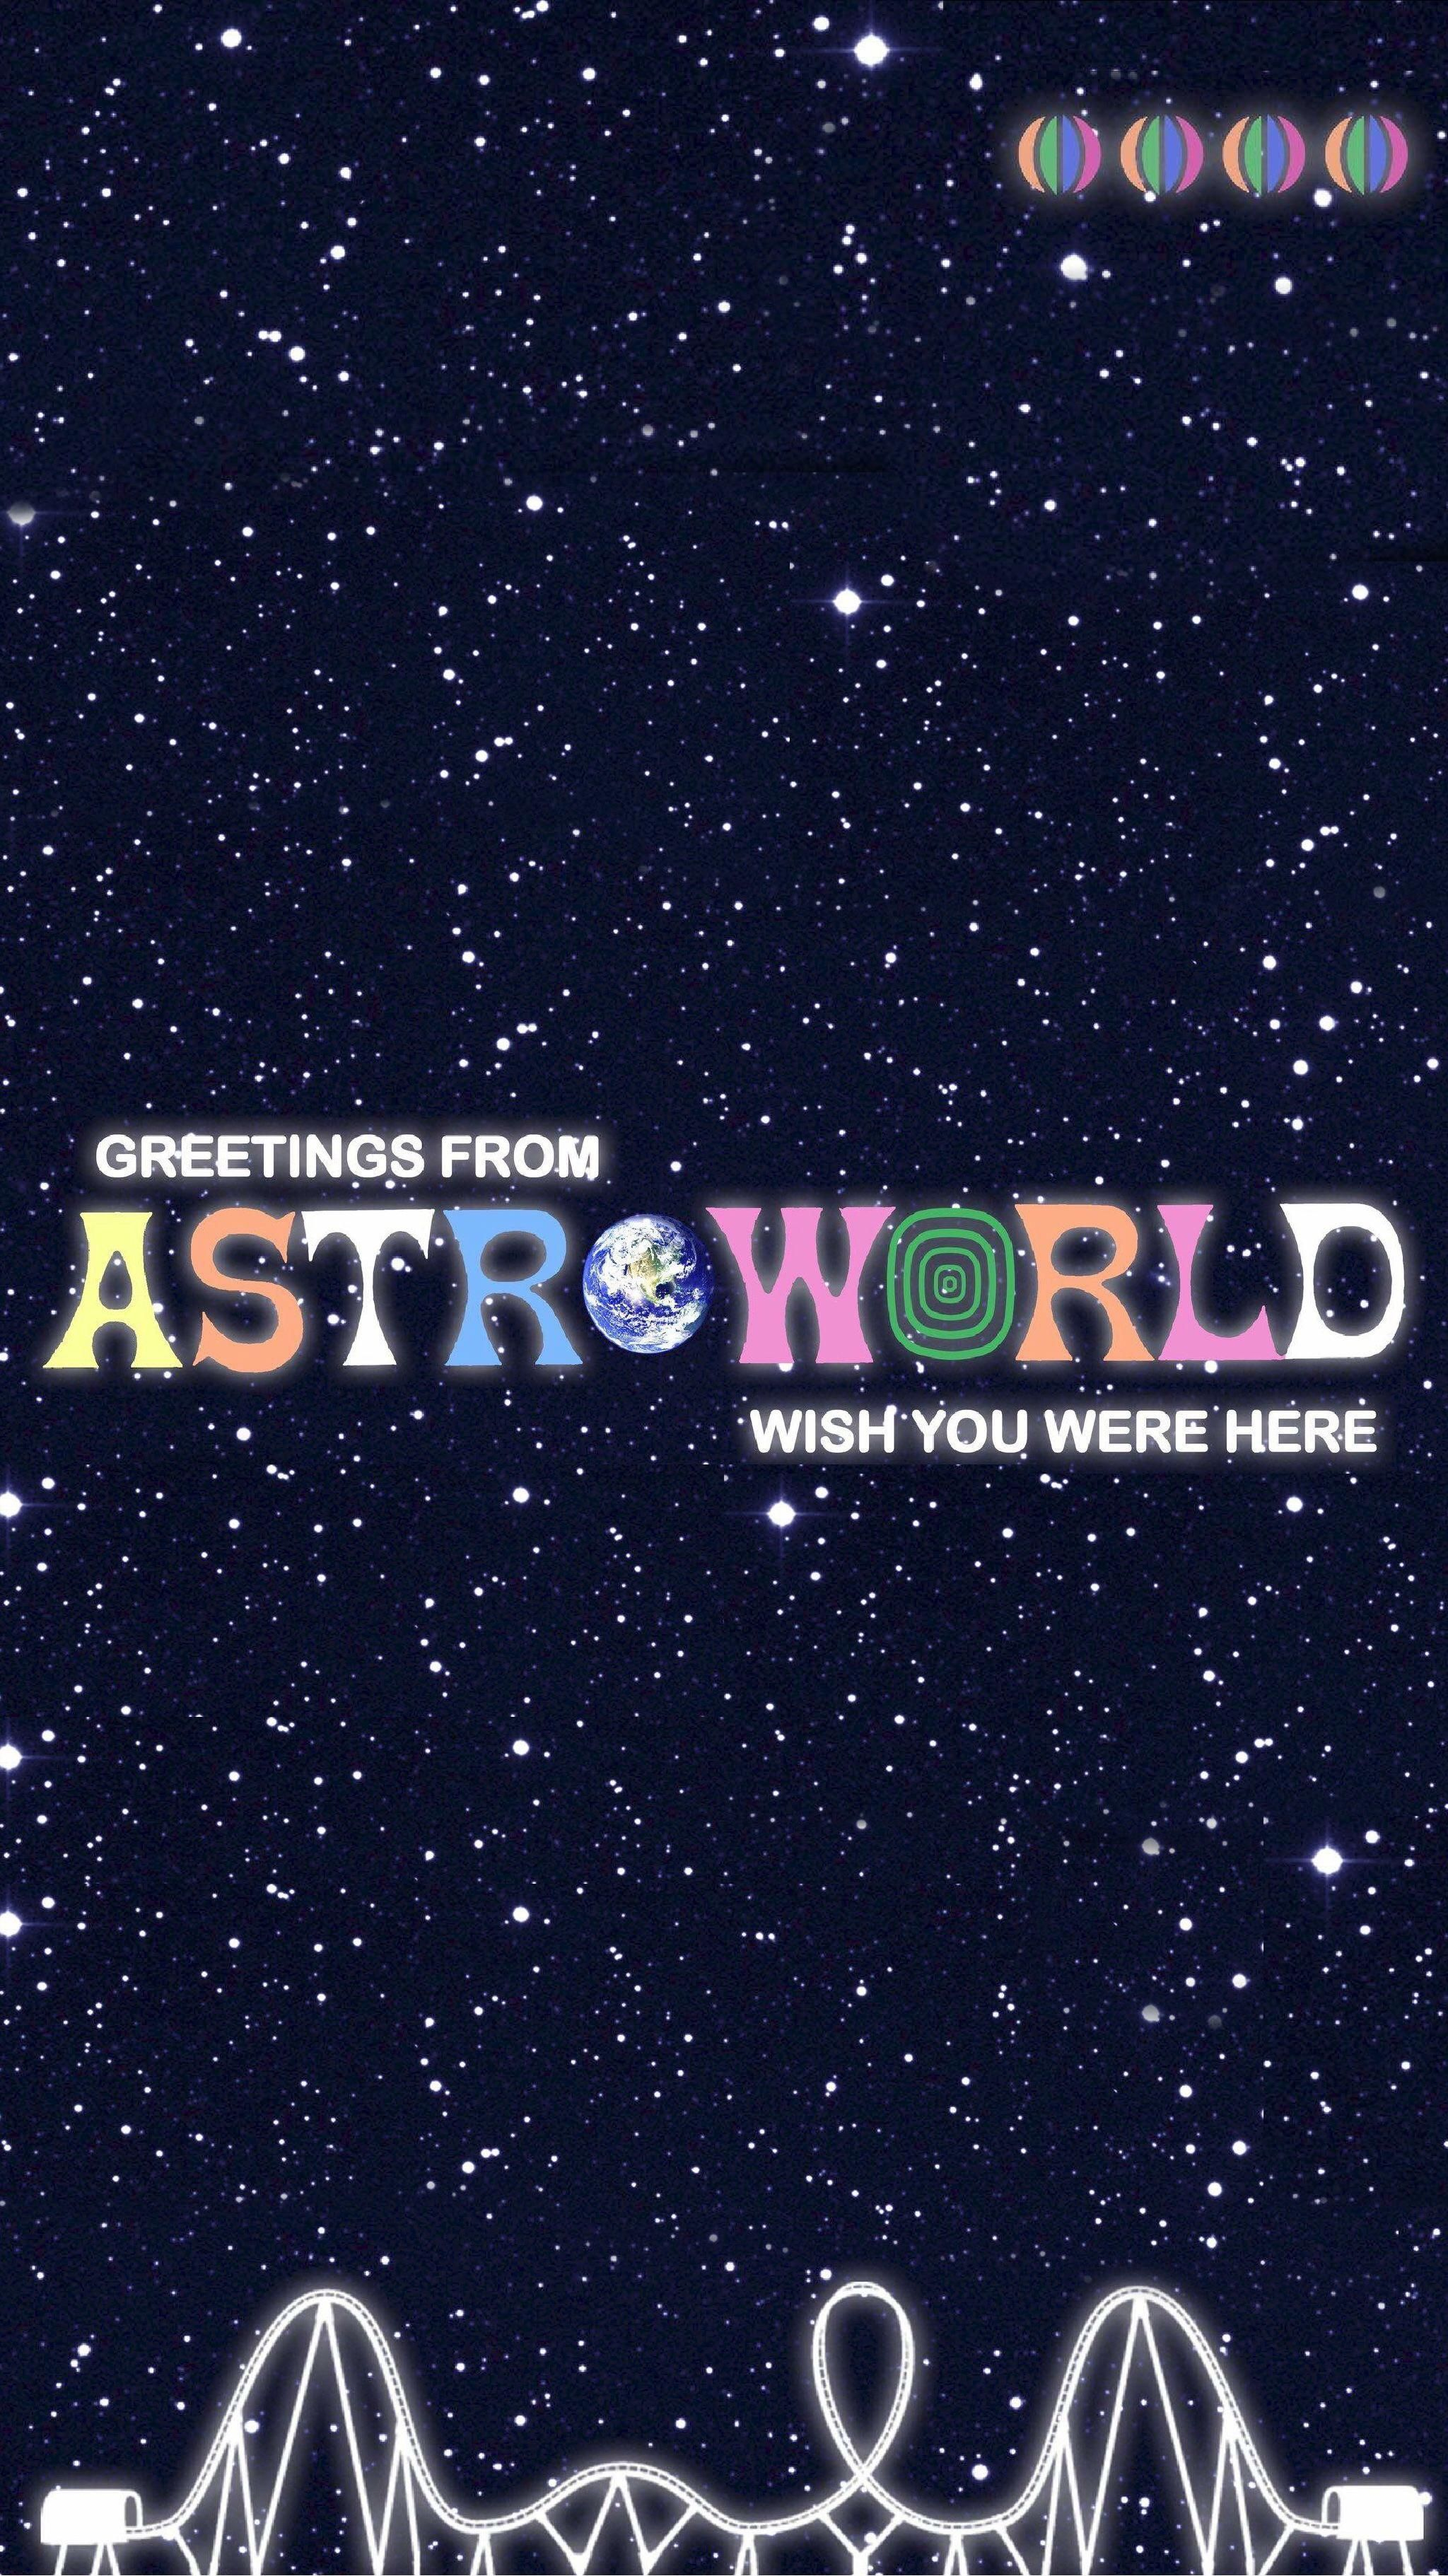 Travis Scott Astroworld Wallpapers Top Free Travis Scott Astroworld Backgrounds W In 2020 Travis Scott Iphone Wallpaper Hypebeast Wallpaper Travis Scott Wallpapers